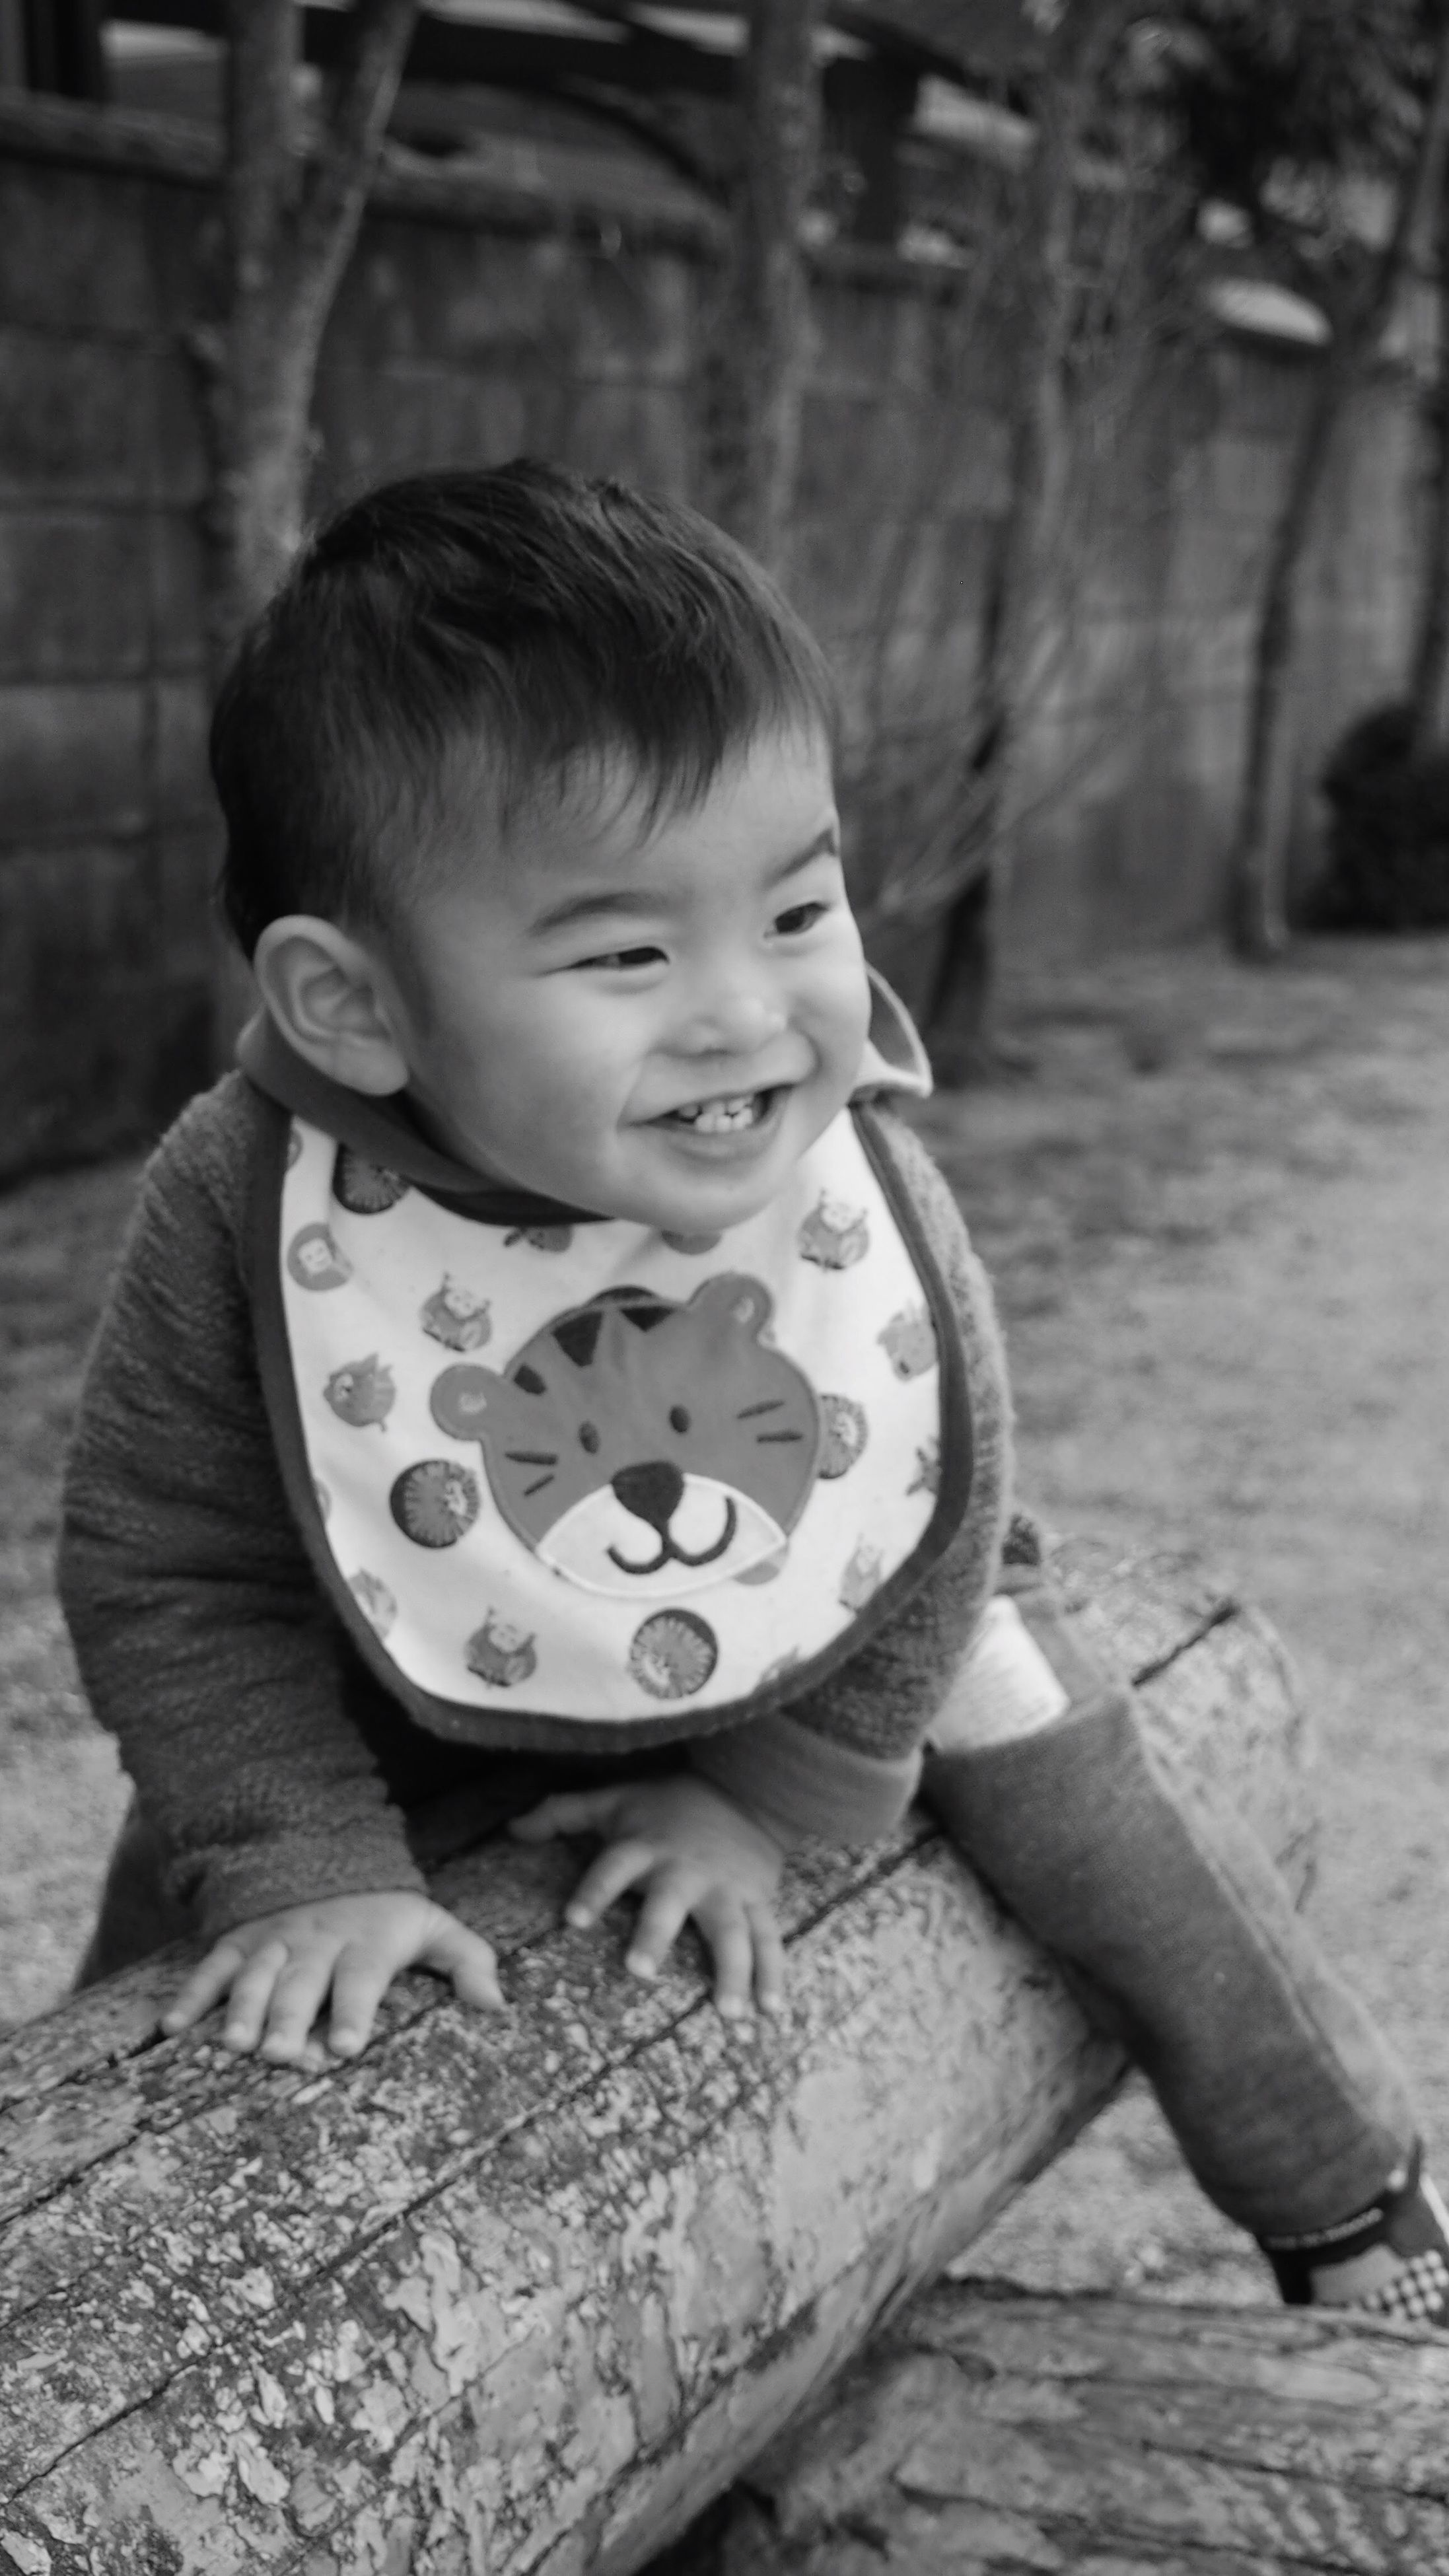 childhood, elementary age, innocence, boys, person, cute, girls, lifestyles, leisure activity, casual clothing, focus on foreground, preschool age, full length, happiness, playful, playing, toddler, front view